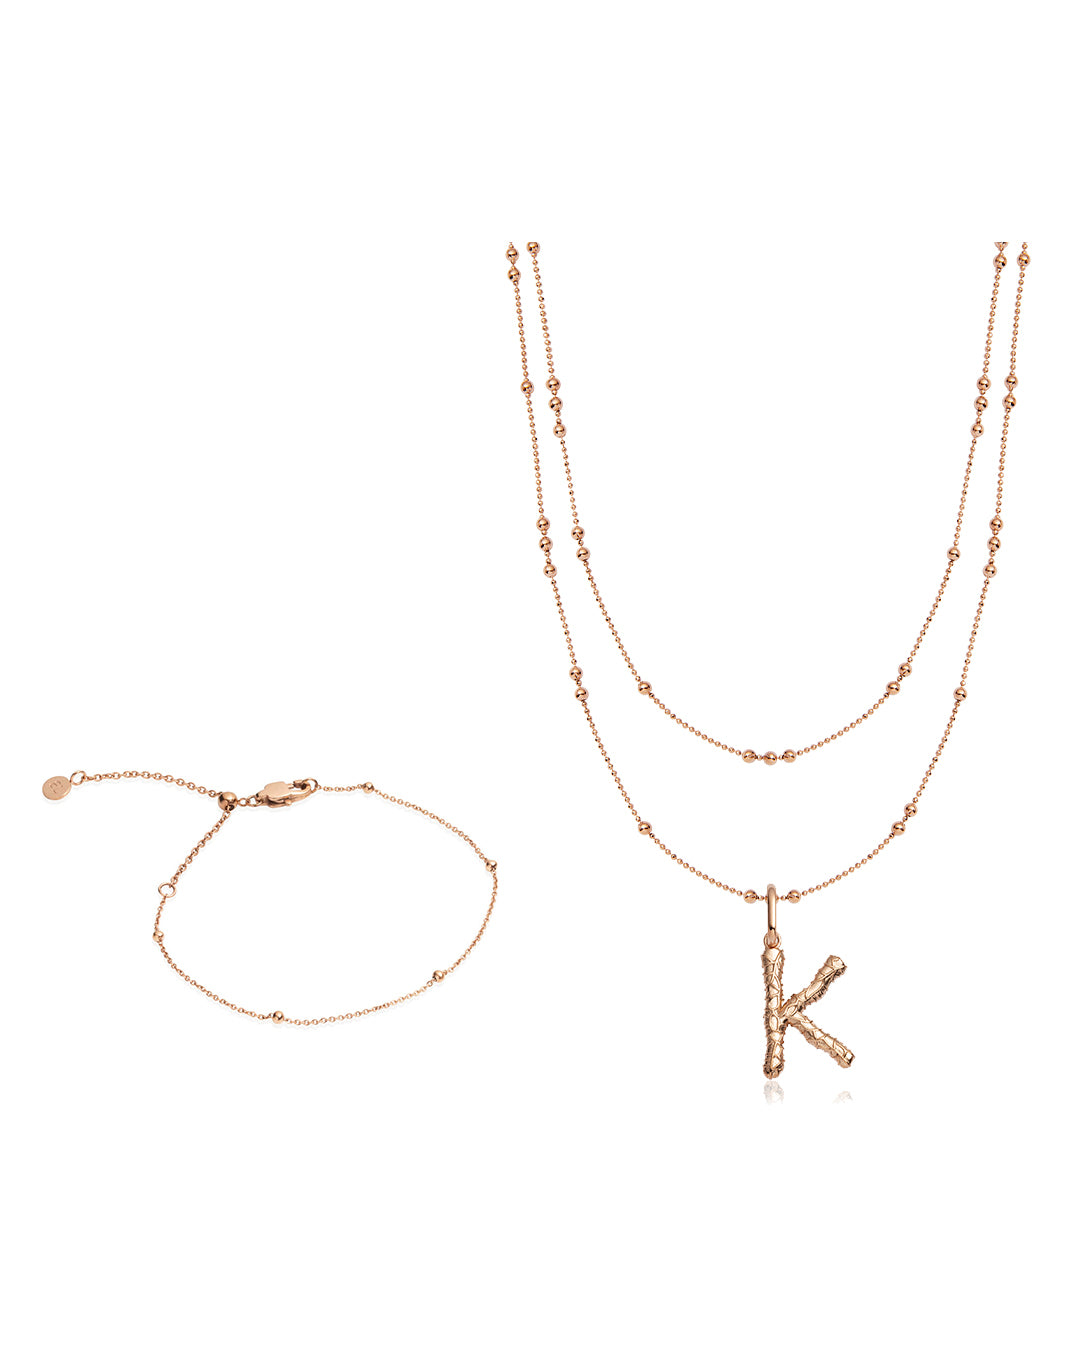 Foil Letter Sphere Chain Necklace & Bracelet Gift Set (Rose Gold)